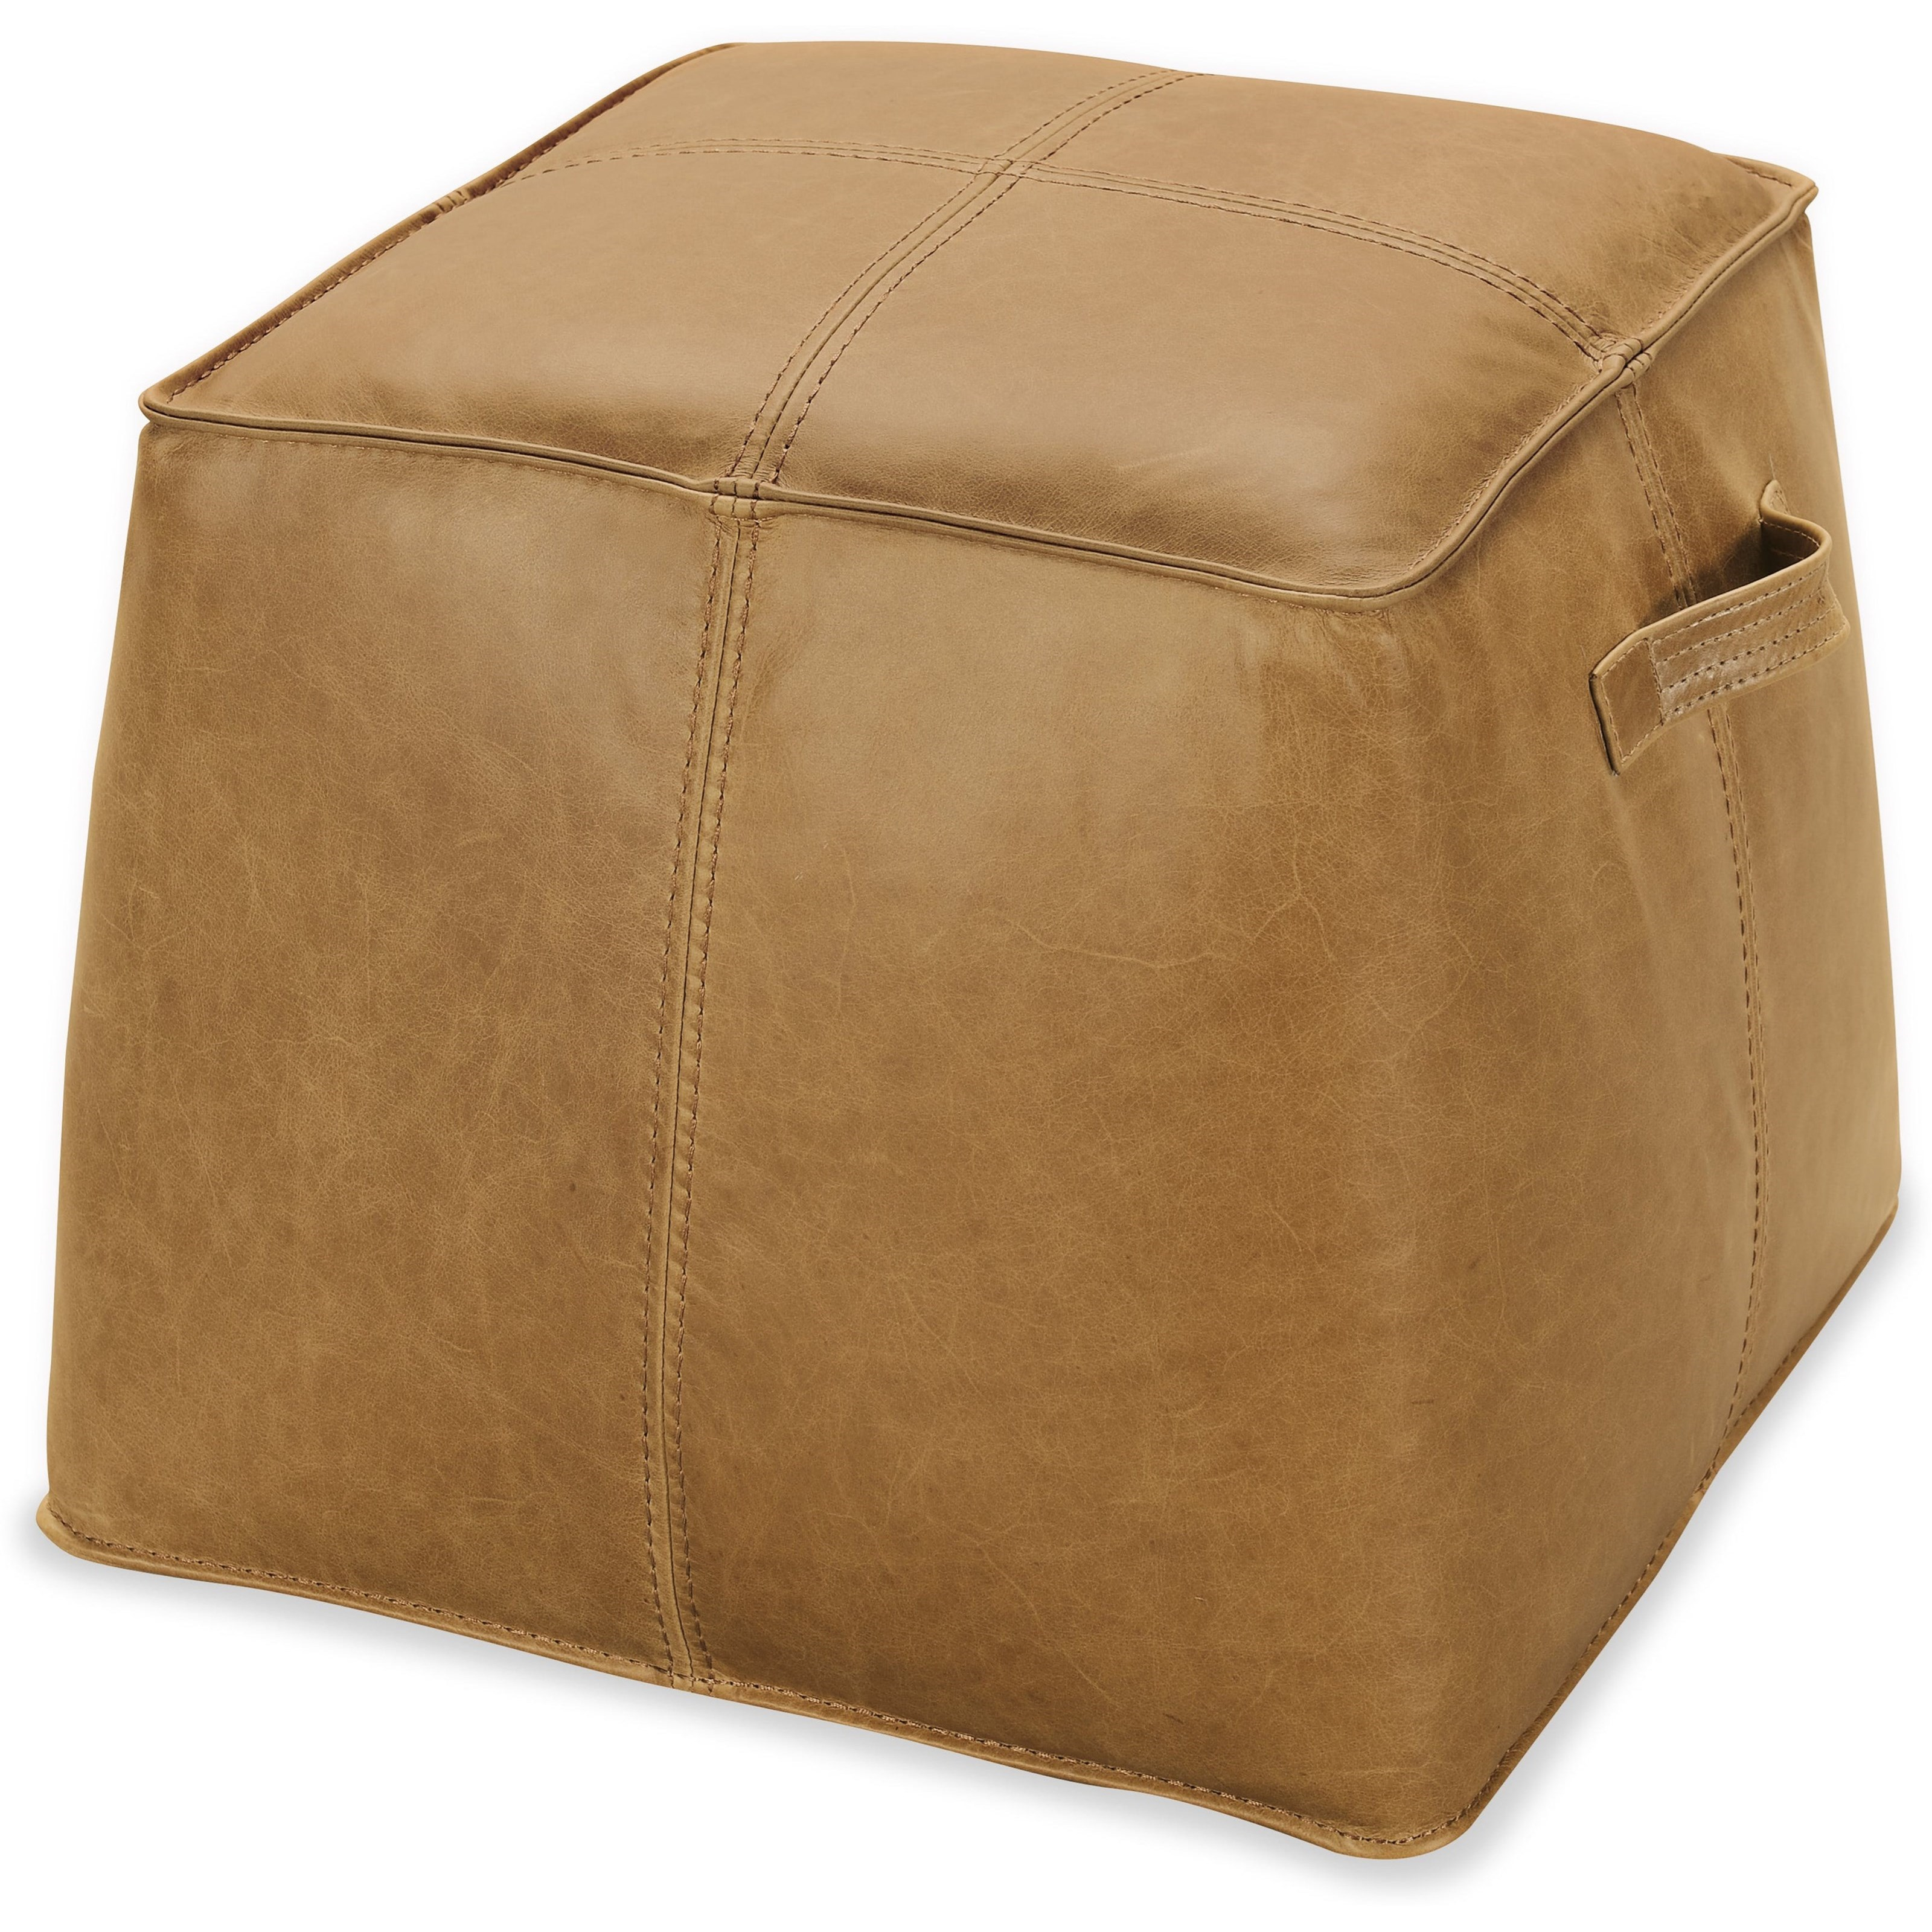 Cocktail Ottomans Birks Large Leather Ottoman by Hooker Furniture at Stoney Creek Furniture